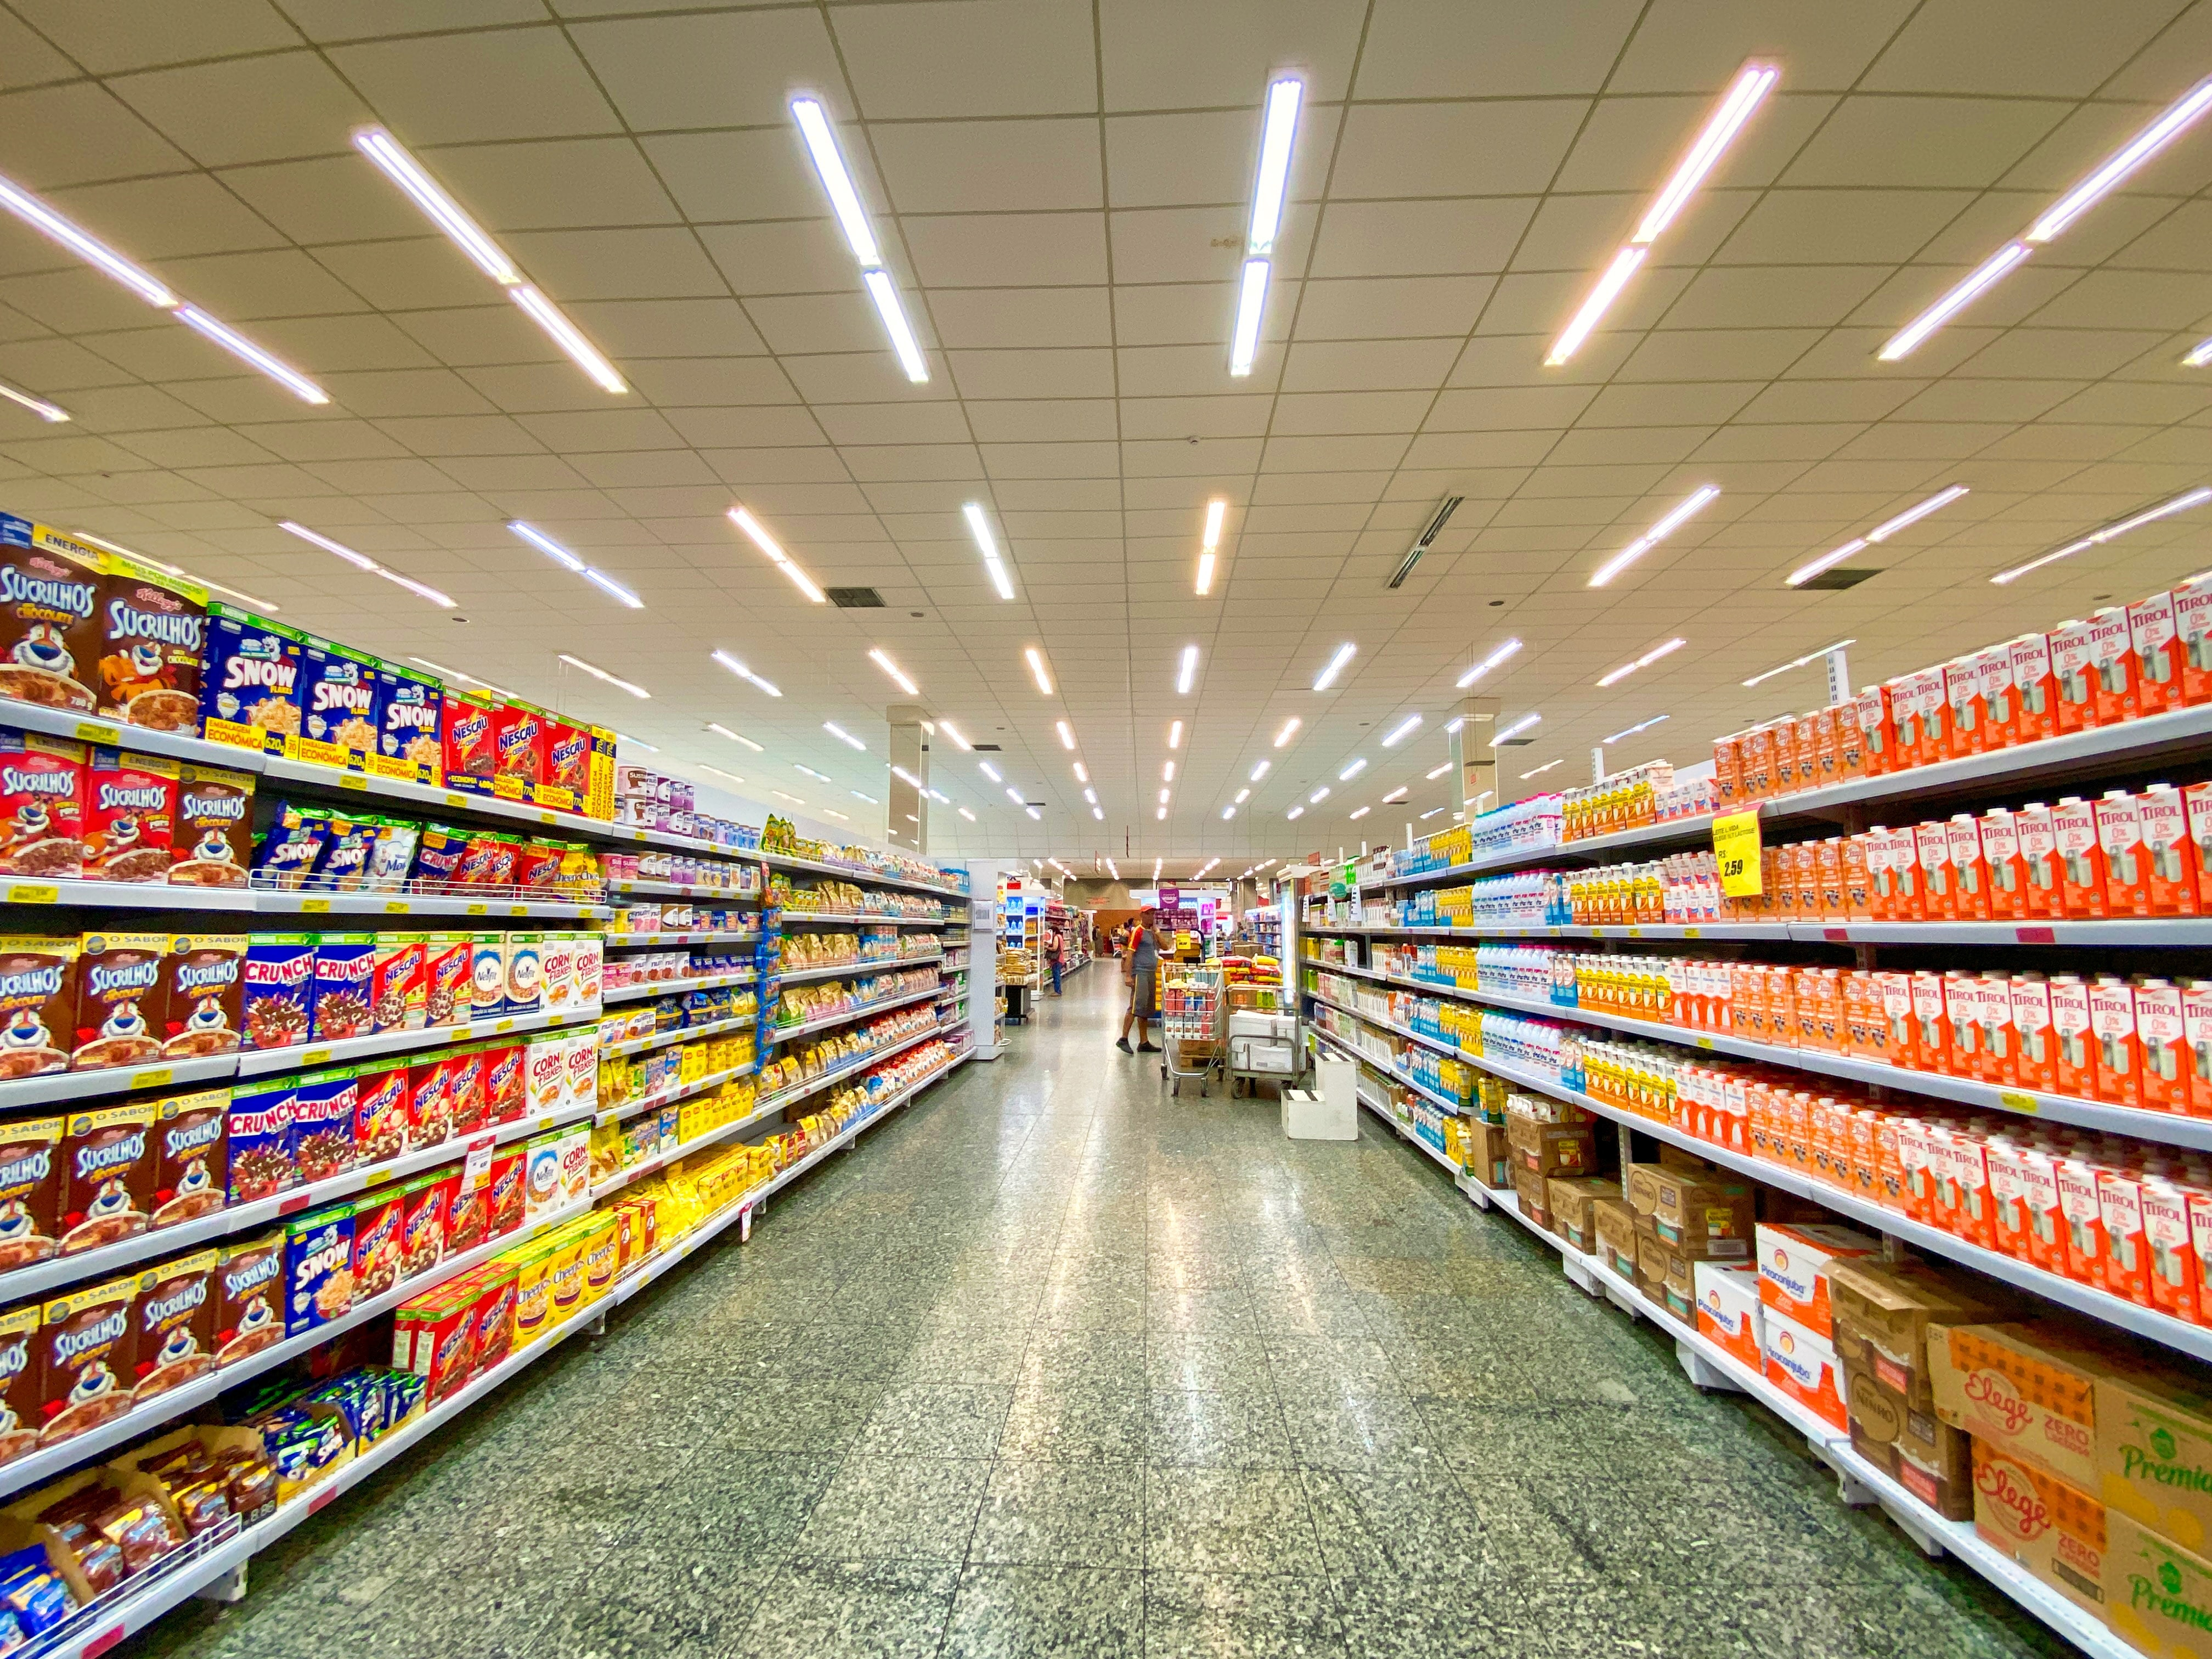 Grocery Store dry goods aisle